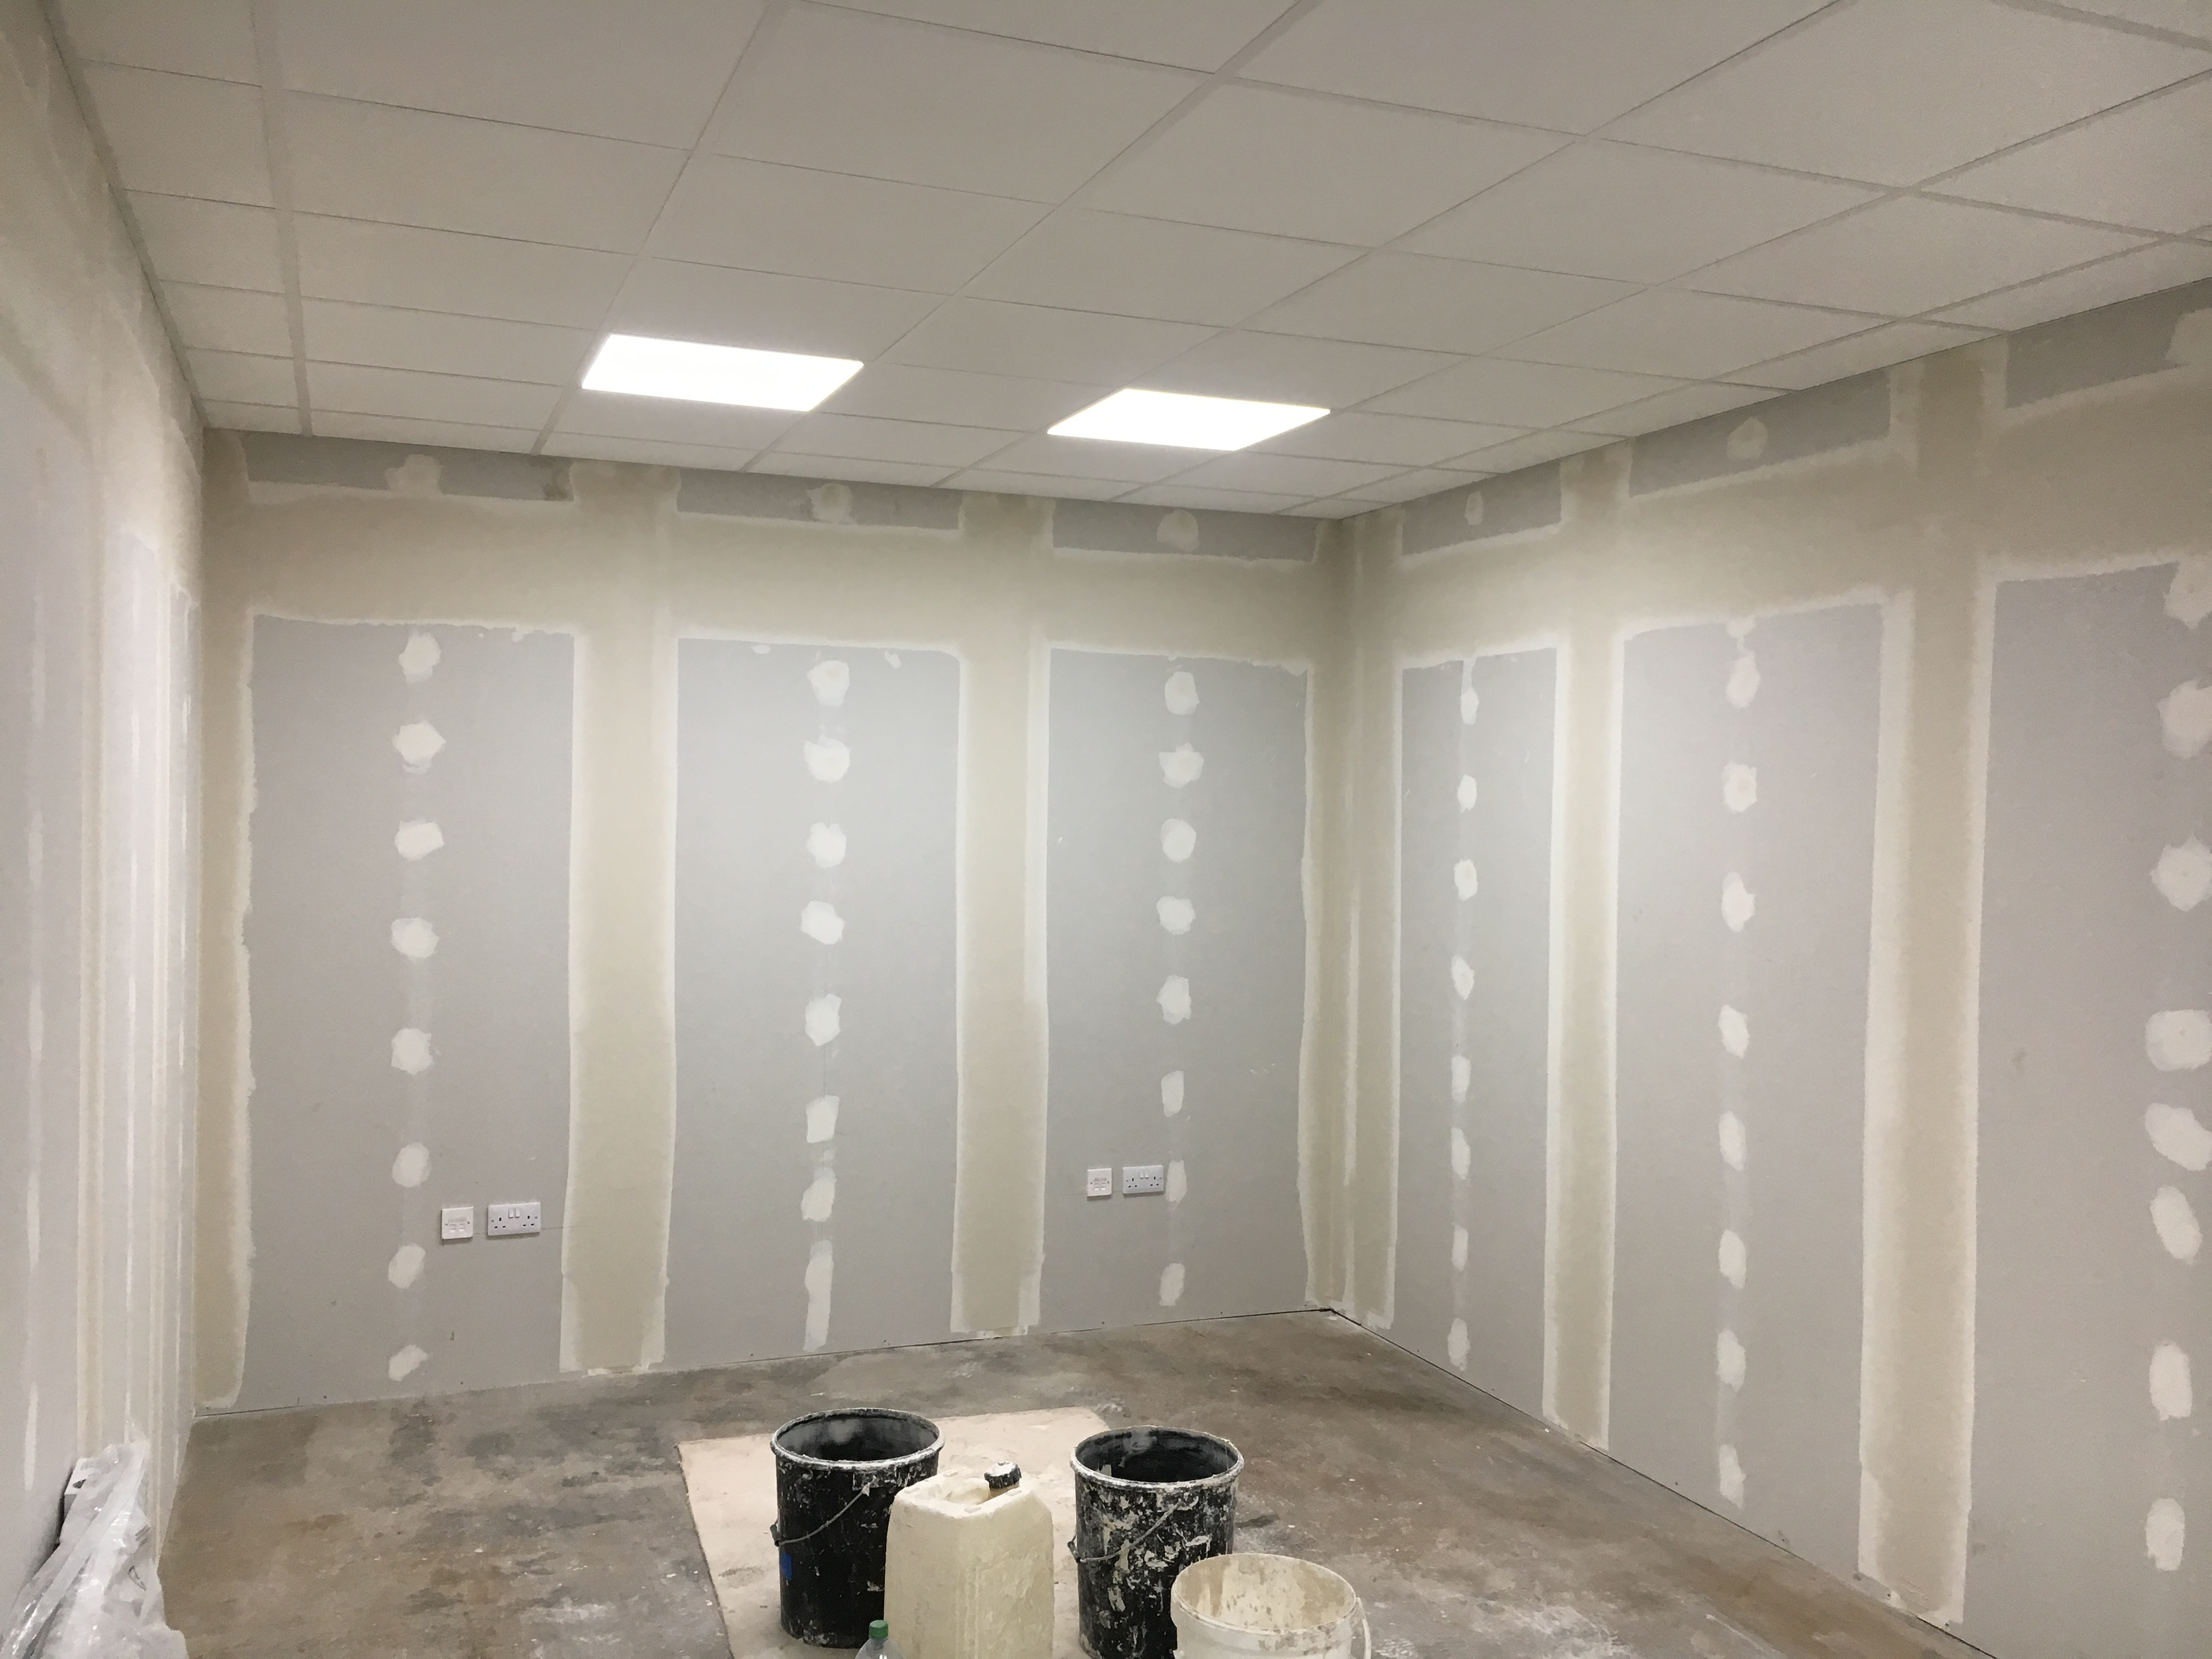 A recent plastering project showcasing the Dot and Dab plastering method